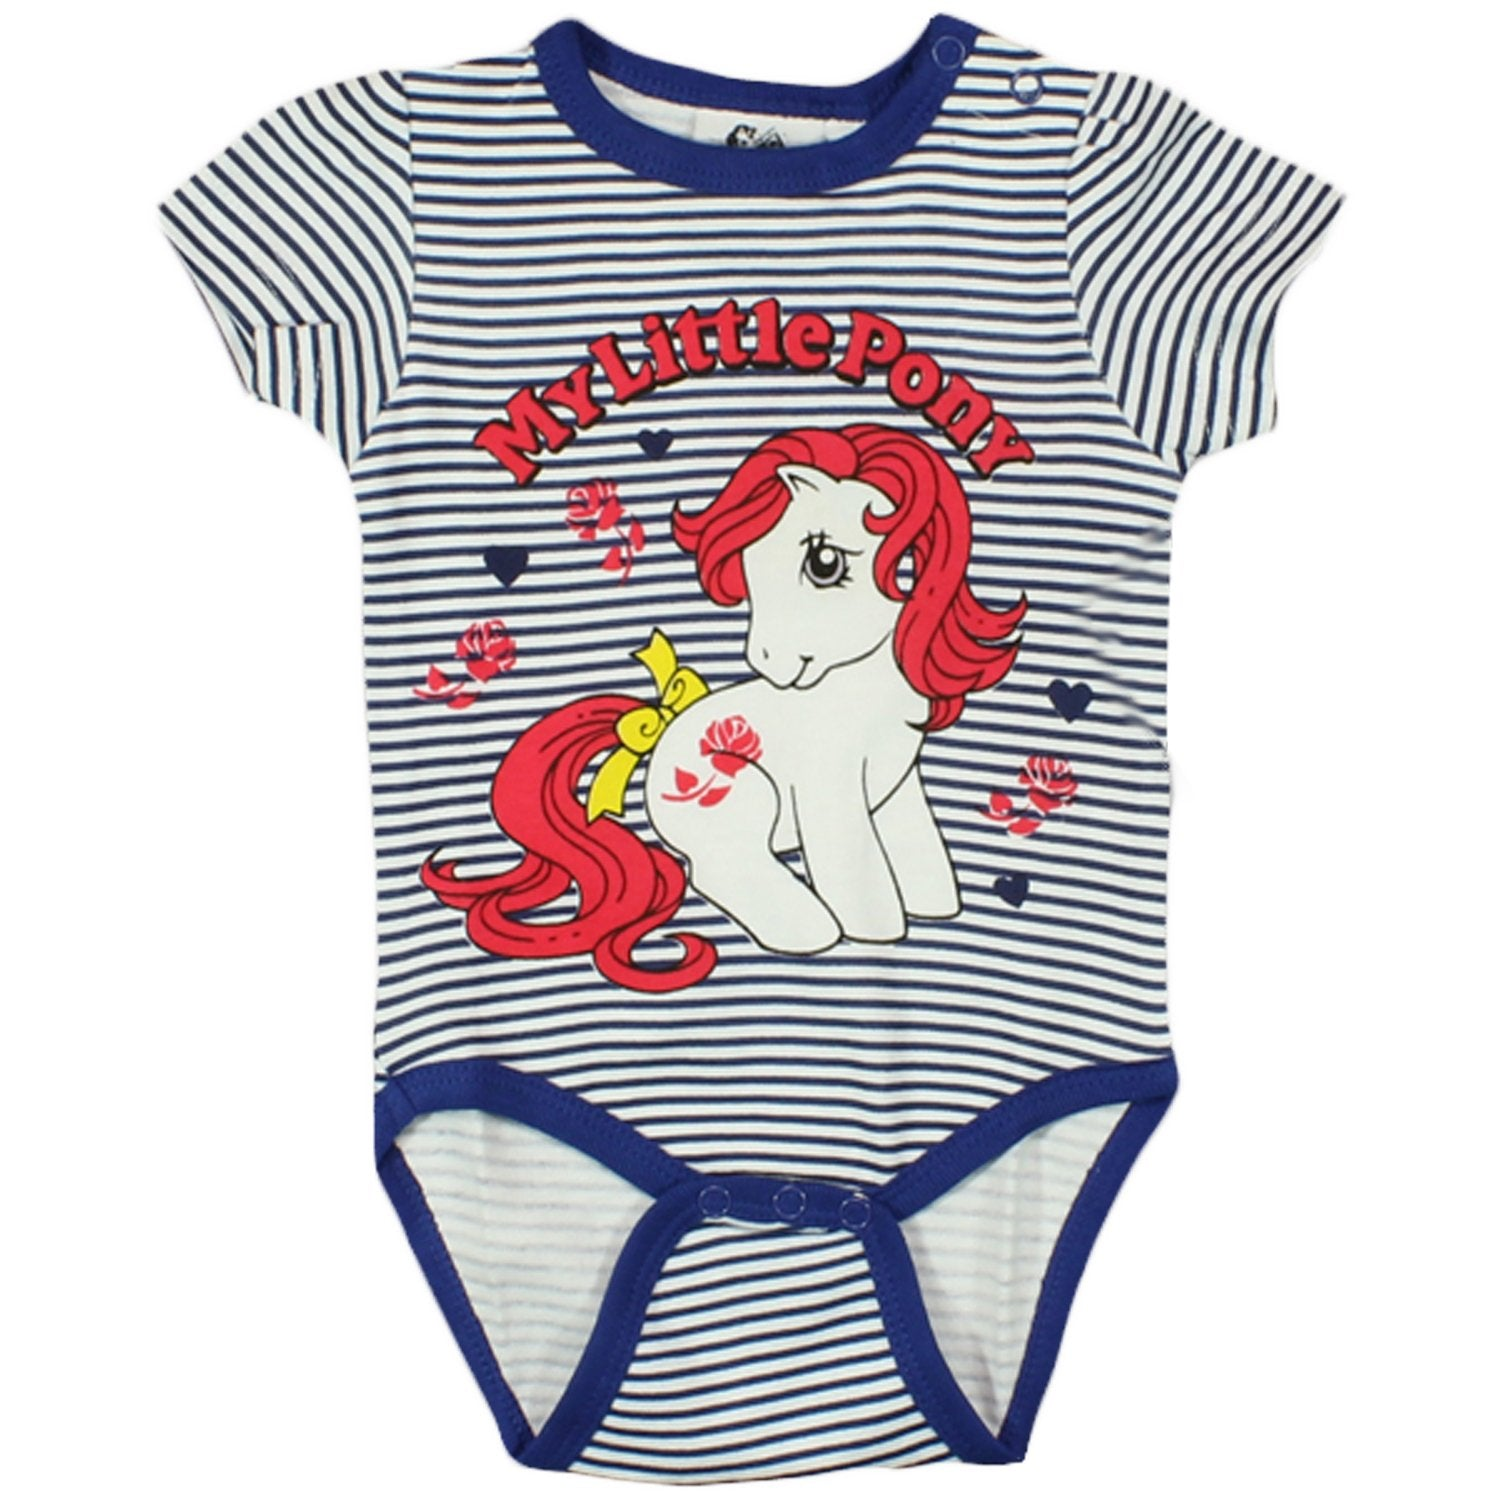 faa6f908099ab MLP Girls My Little Pony One Piece Bodysuit/Sleepsuit/Romper ...